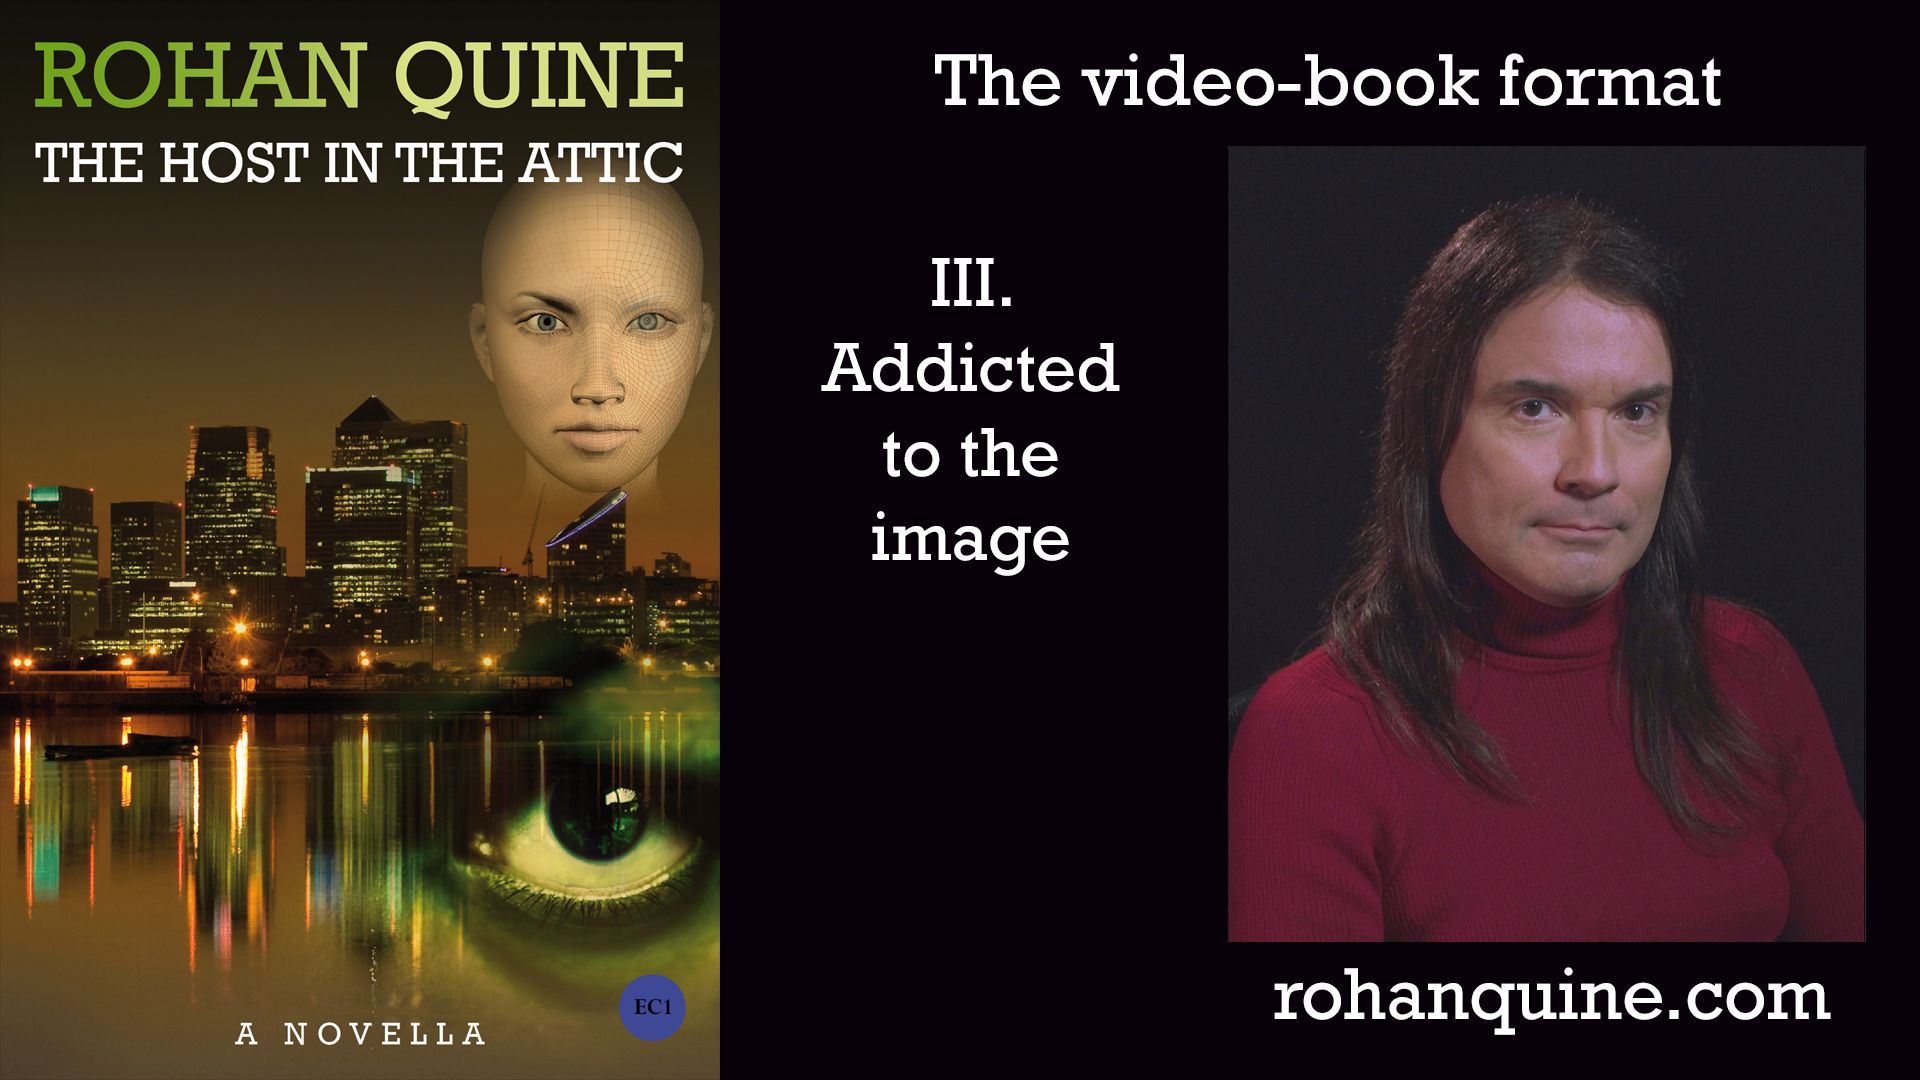 THE HOST IN THE ATTIC by Rohan Quine - video-book format - chapter III